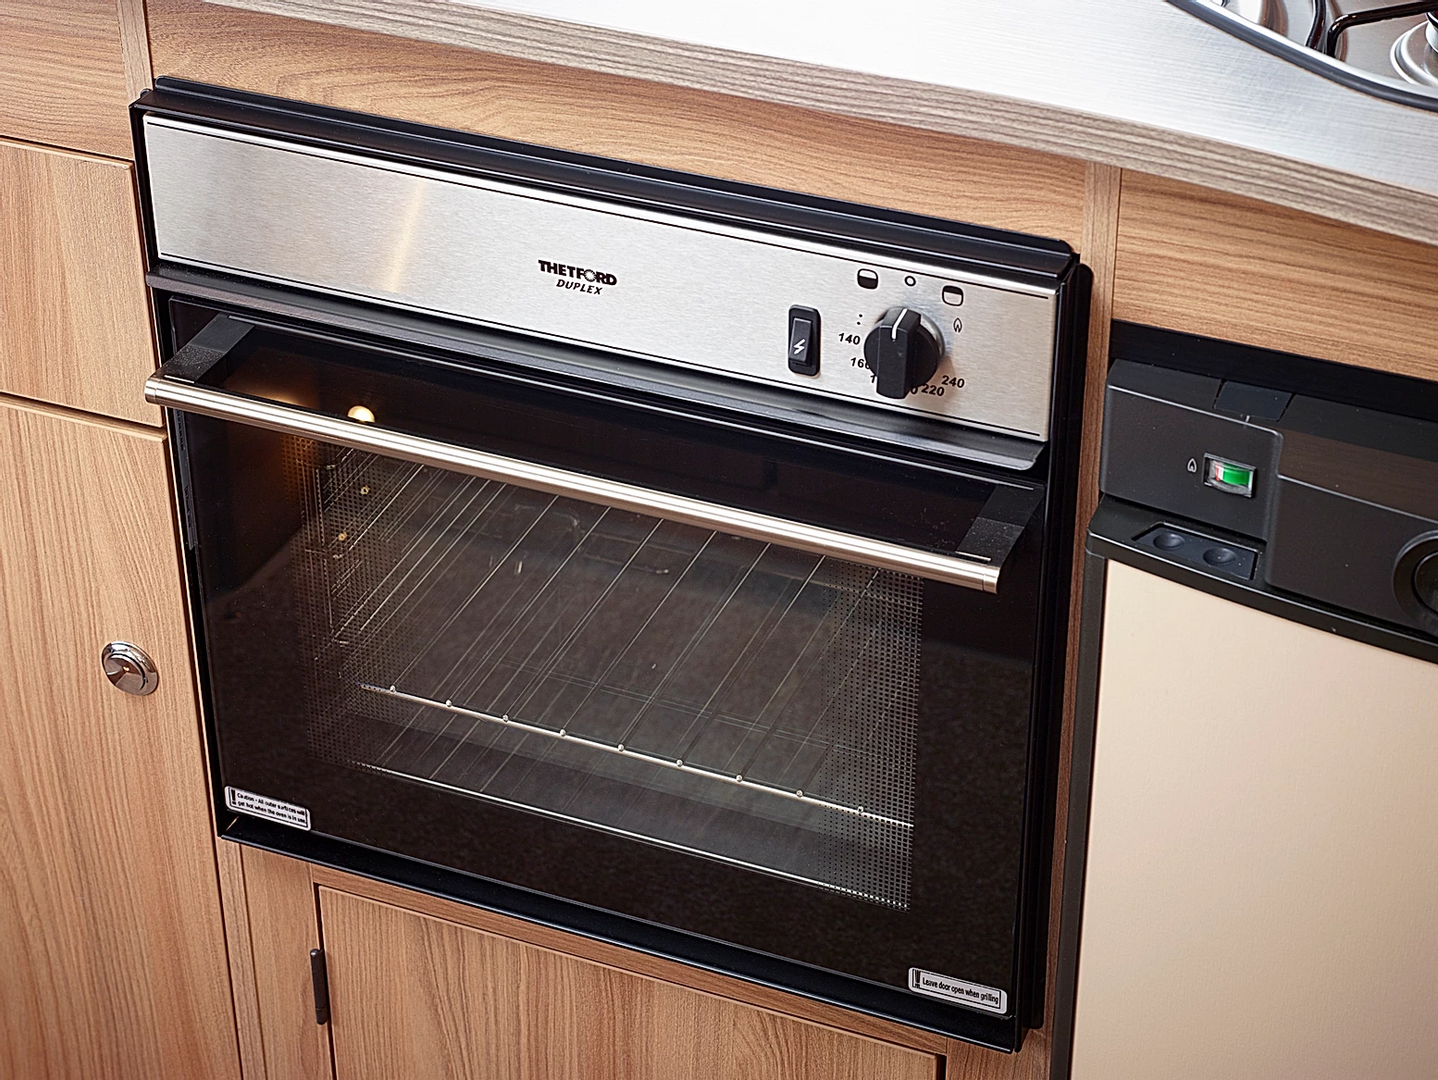 Bailey oven.png